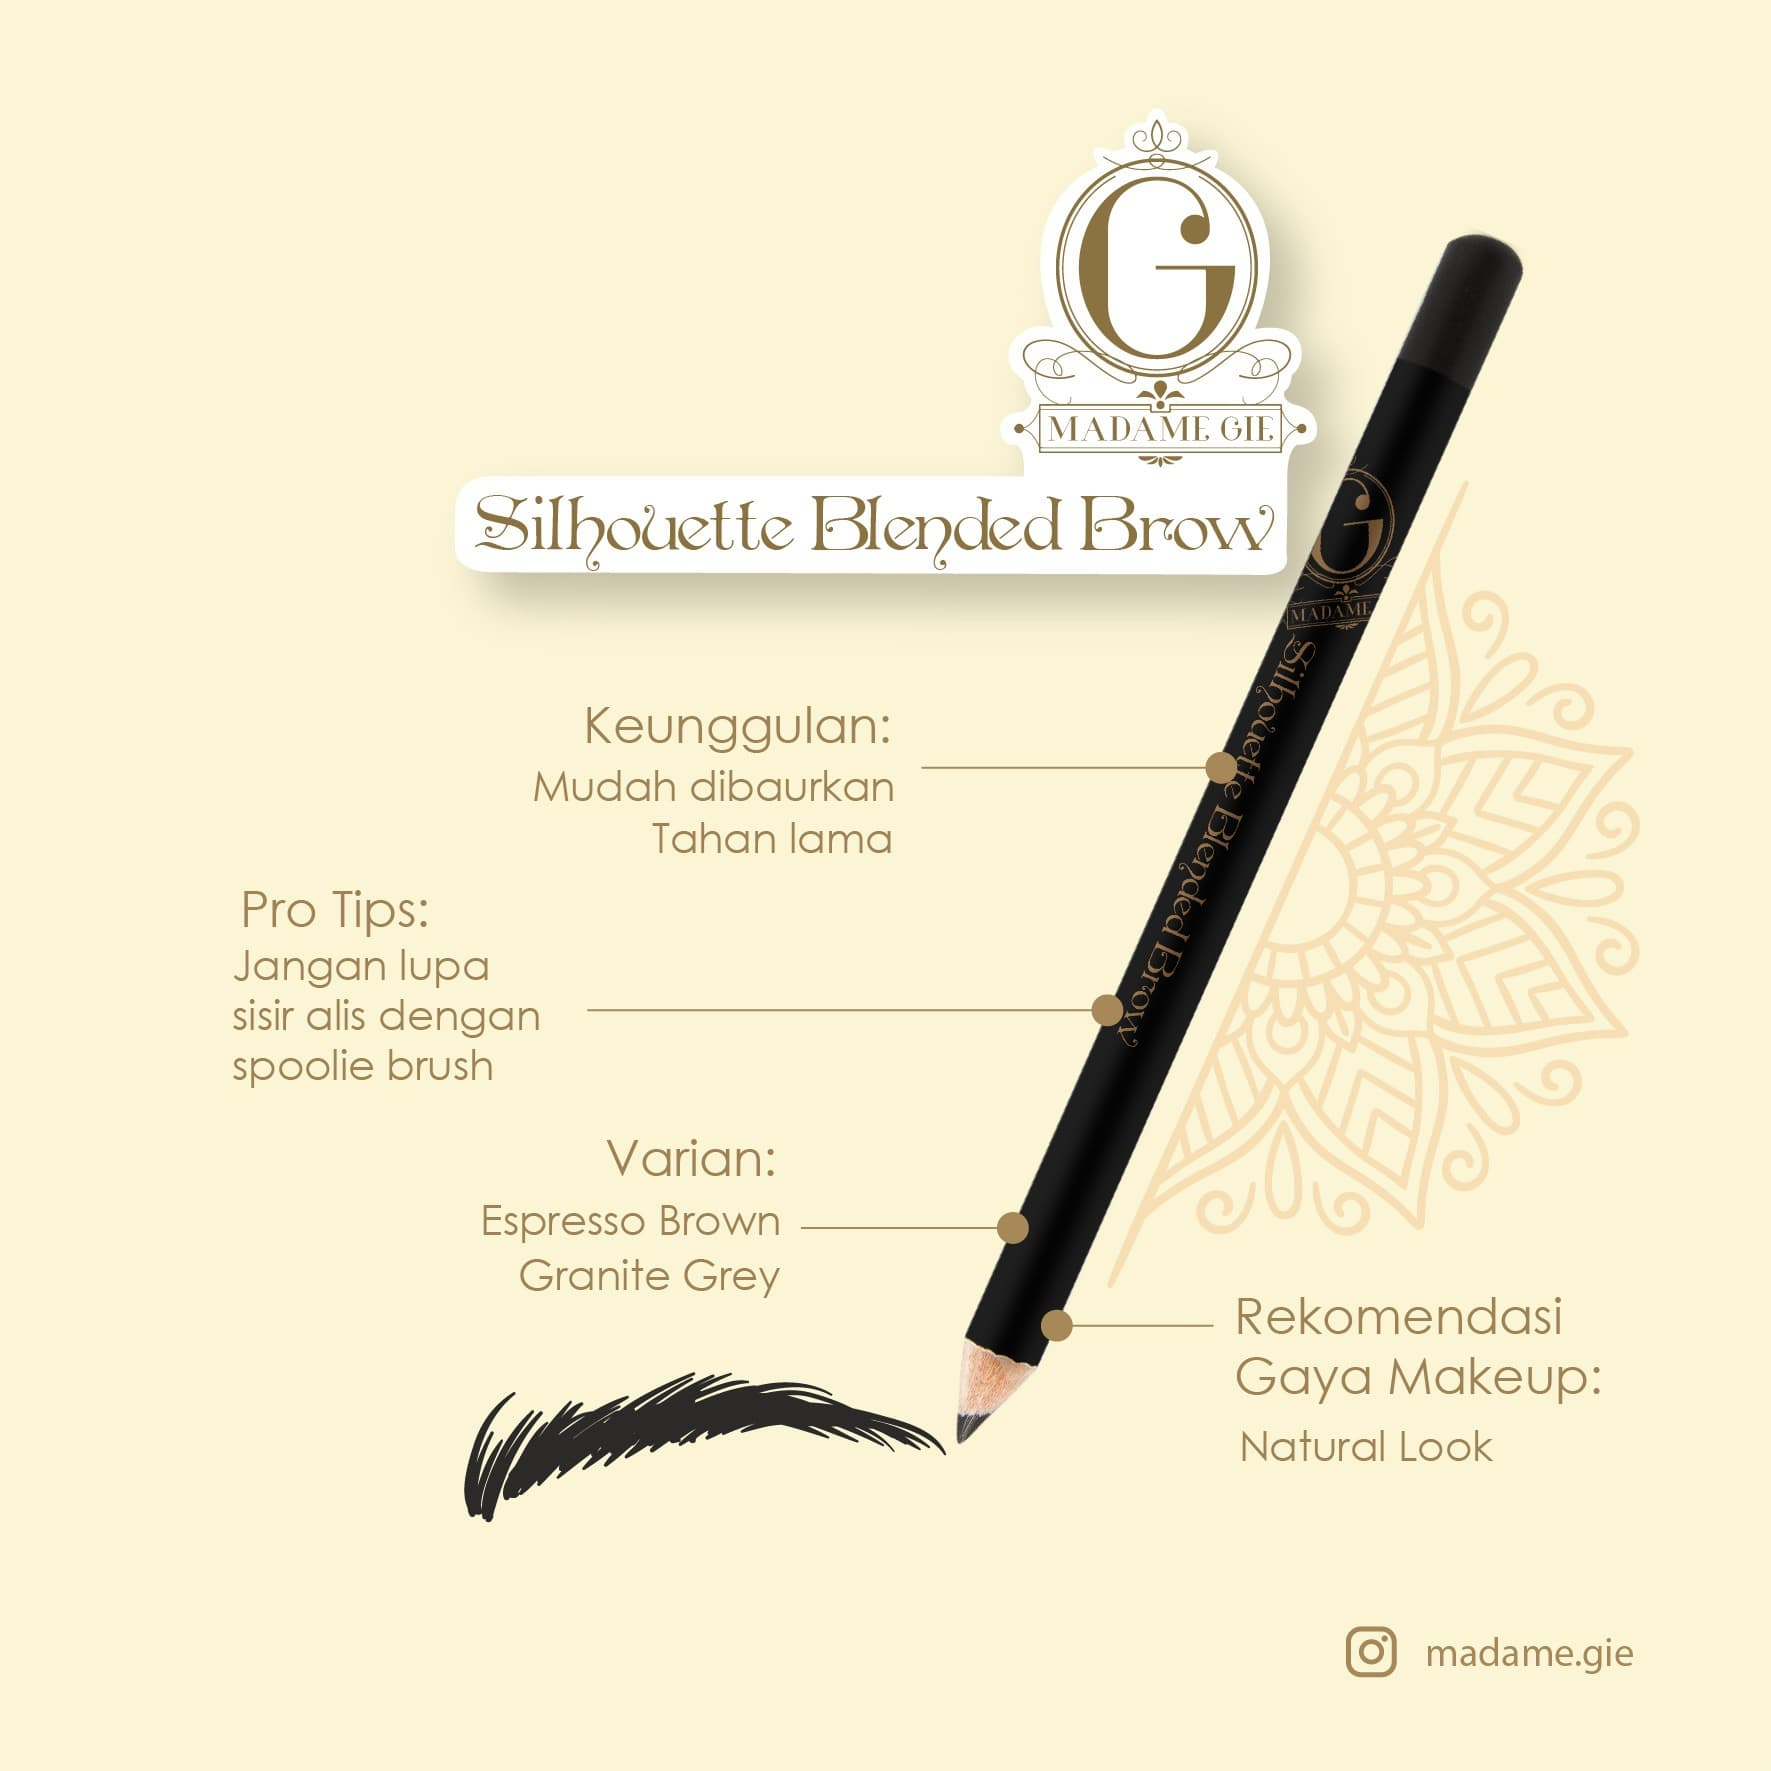 MADAME GIE SILHOUETTE BLENDED BROW MADAME GIE PENSIL ALIS - ESPRESSO BROWN thumbnail